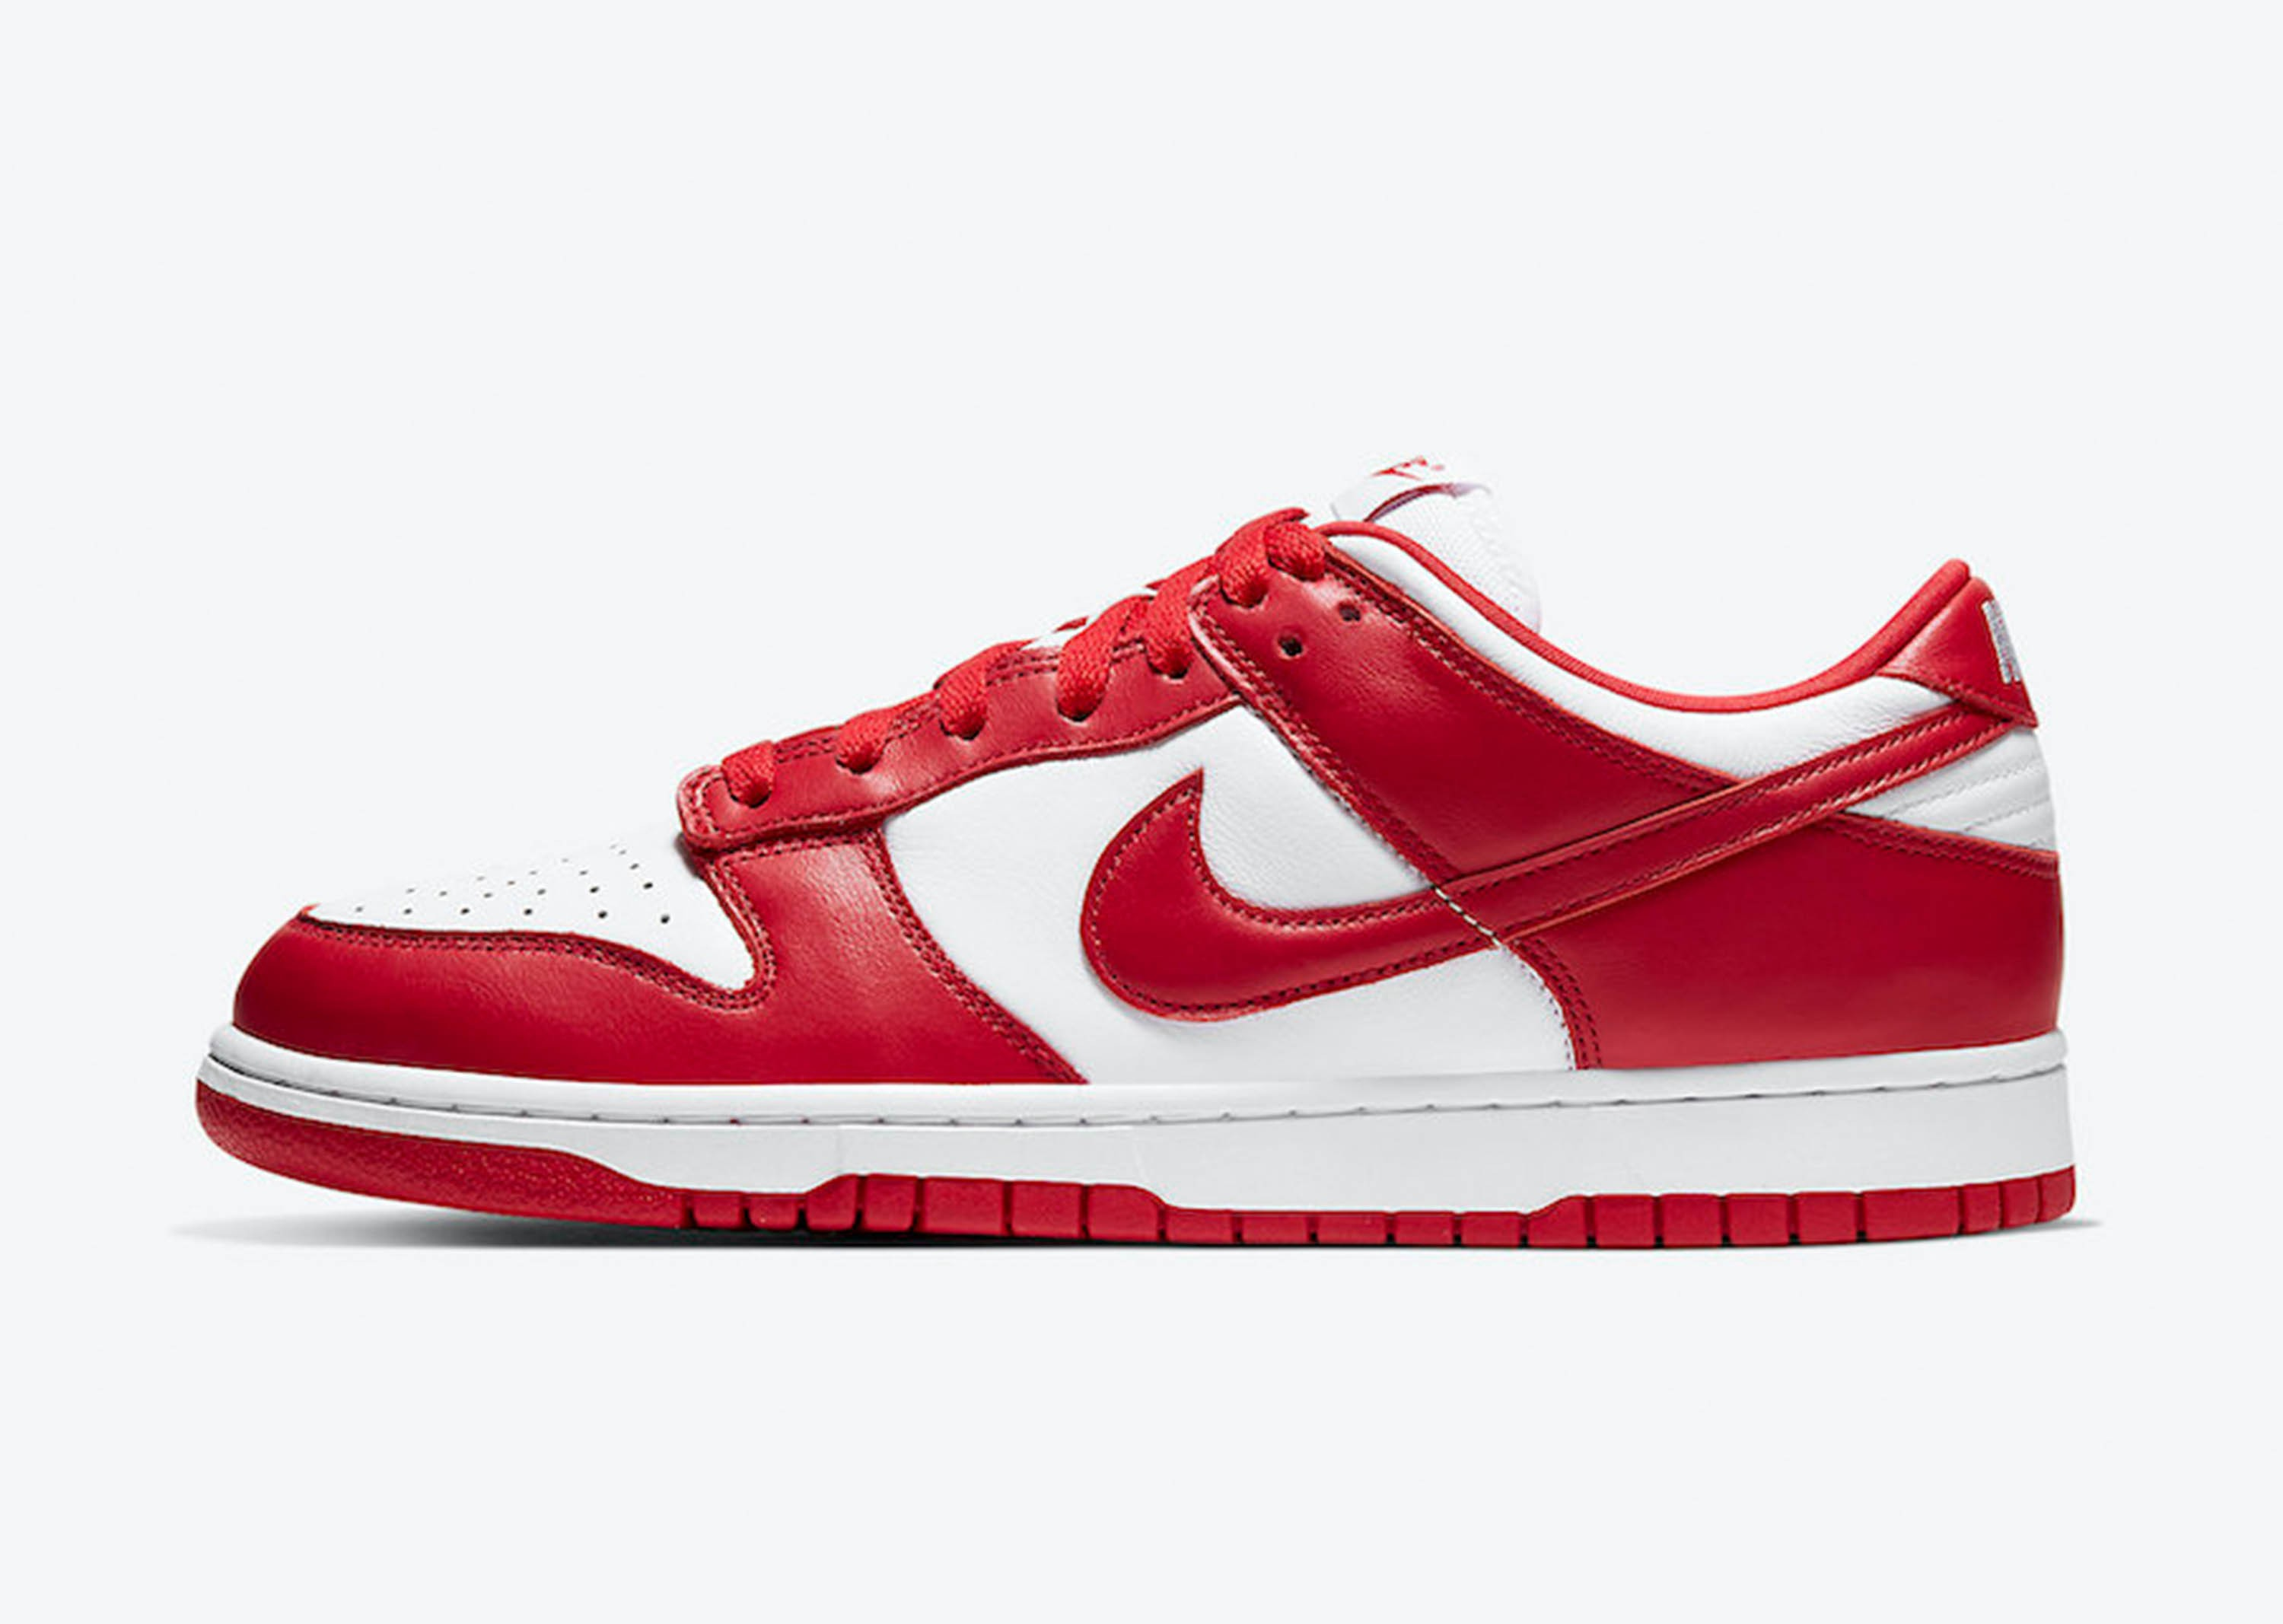 nike_dunk_low_university_red_0001_Layer 0 copy 2